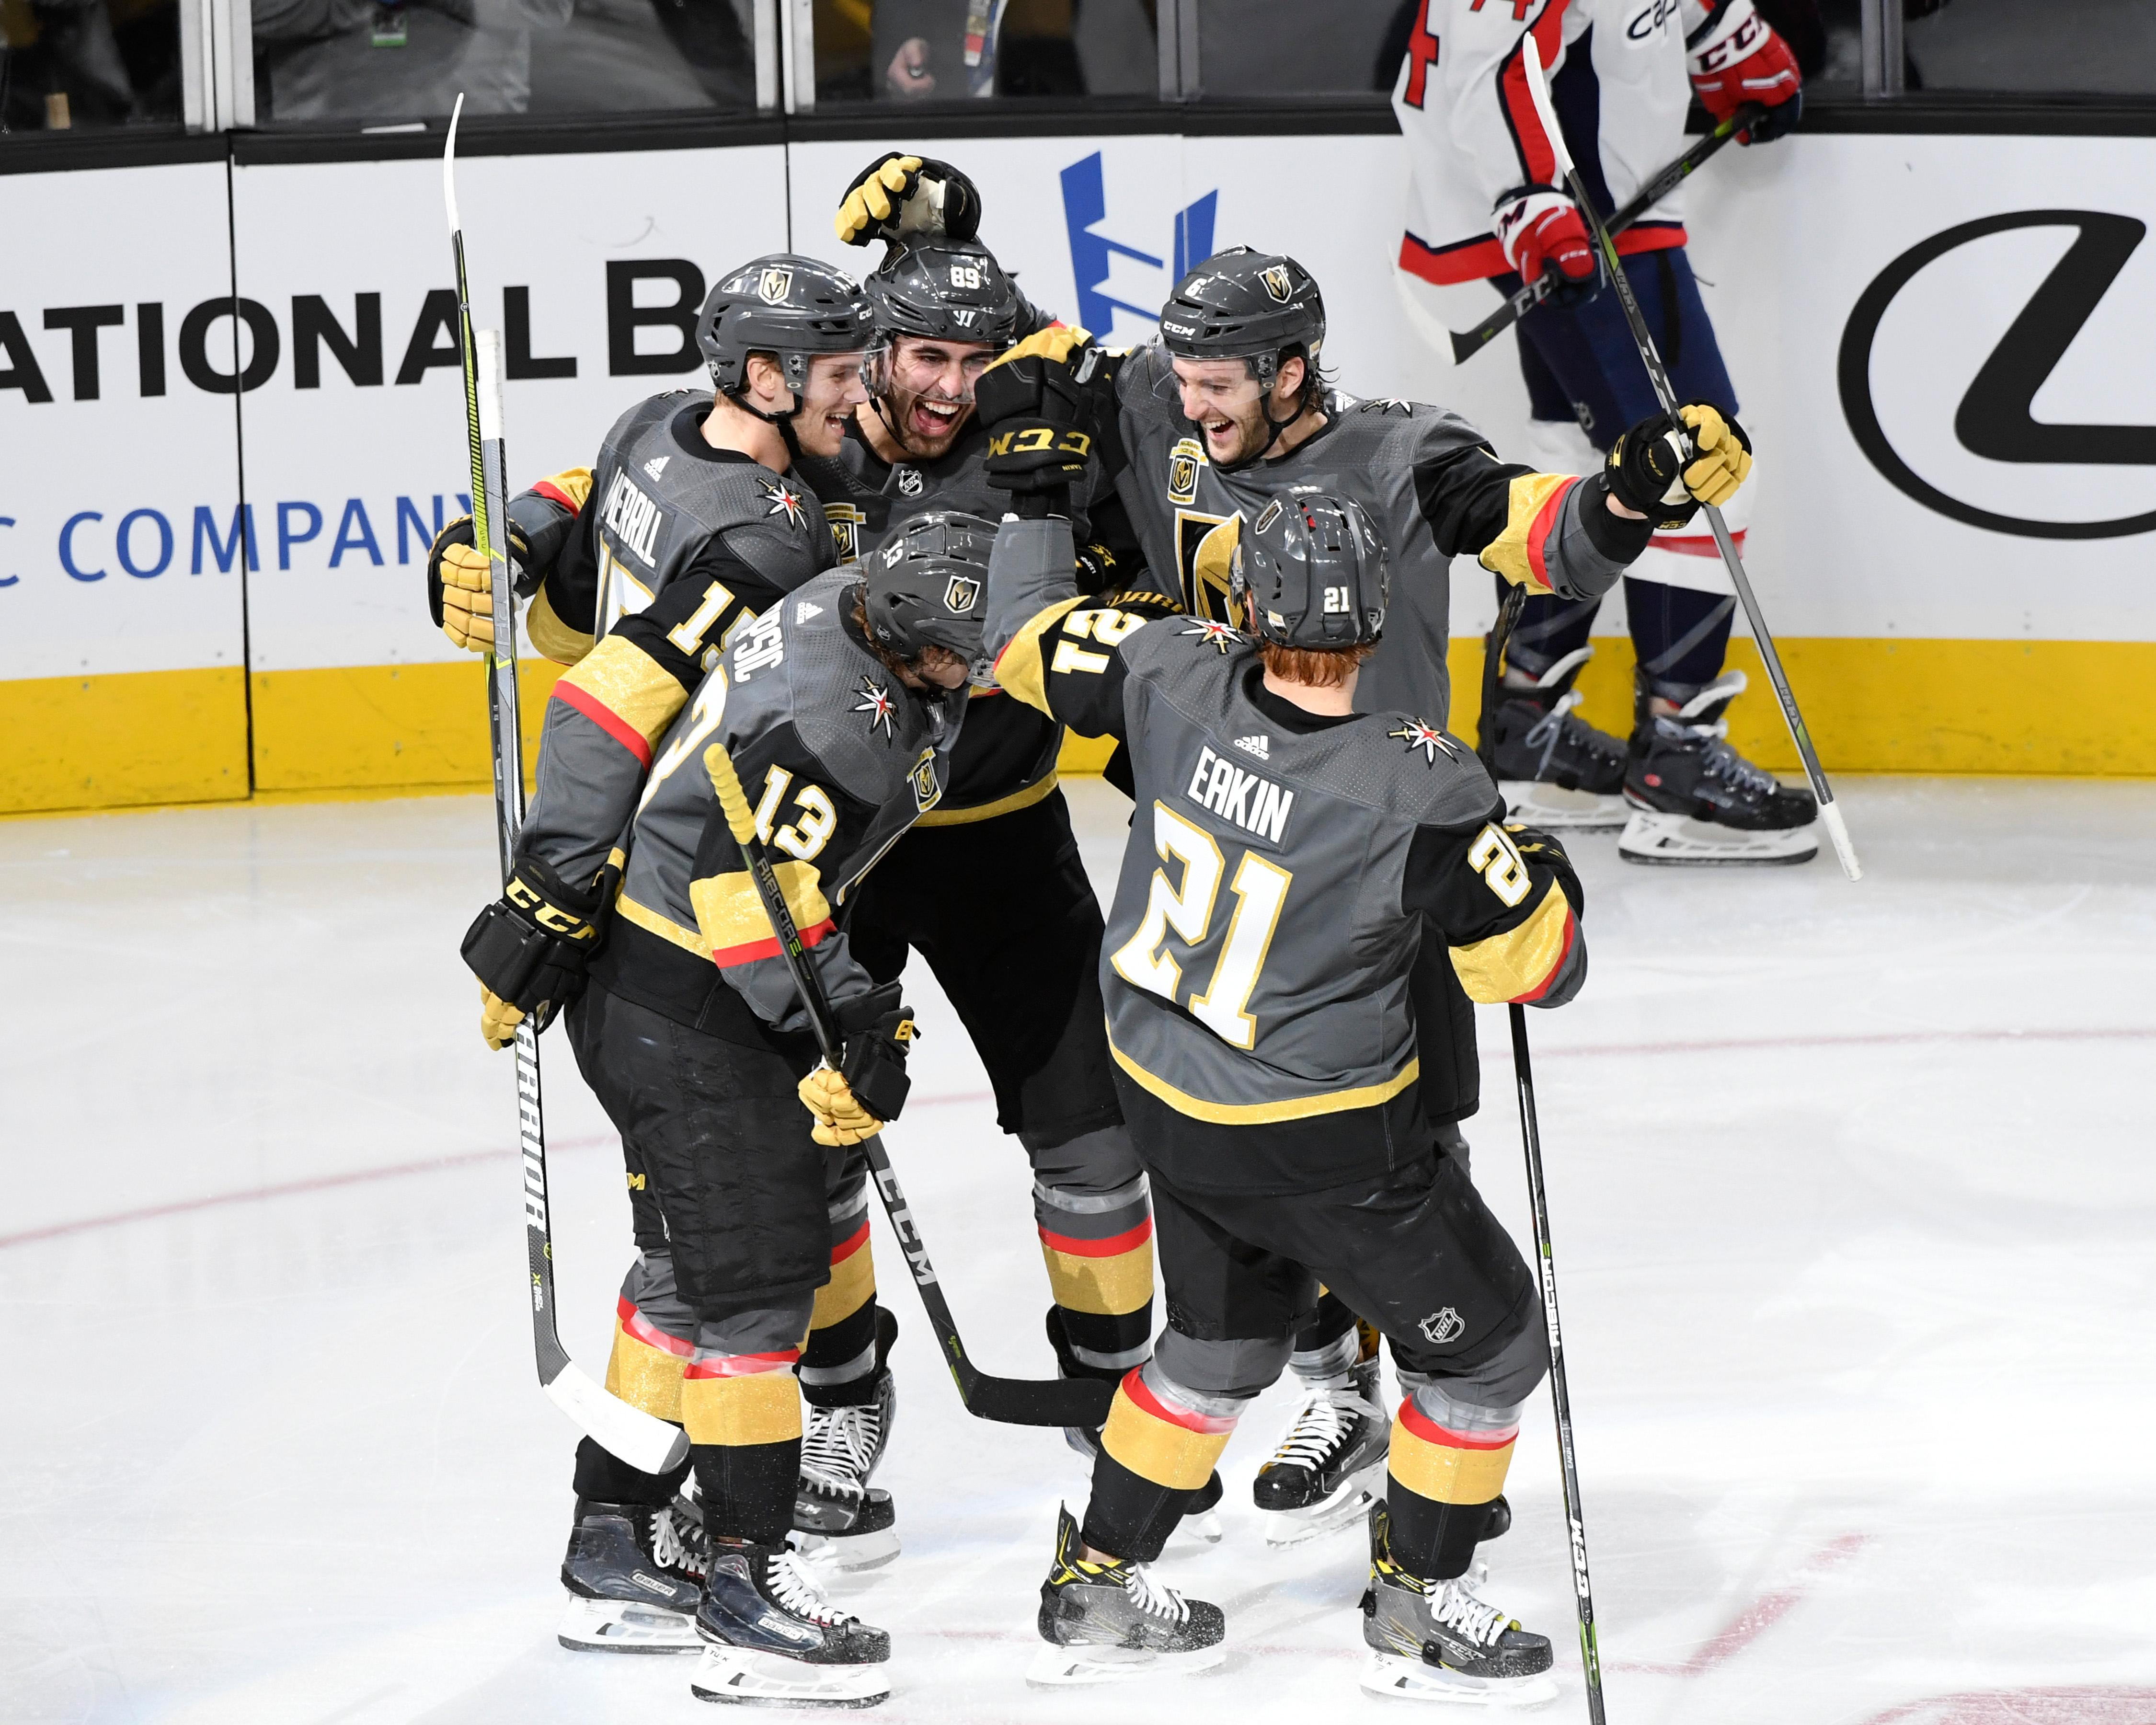 The Vegas Golden Knights celebrate their second goal of the first period against the Washington Capitals during their NHL hockey game Saturday, December 23, 2017, at T-Mobile Arena in Las Vegas.  CREDIT: Sam Morris/Las Vegas News Bureau